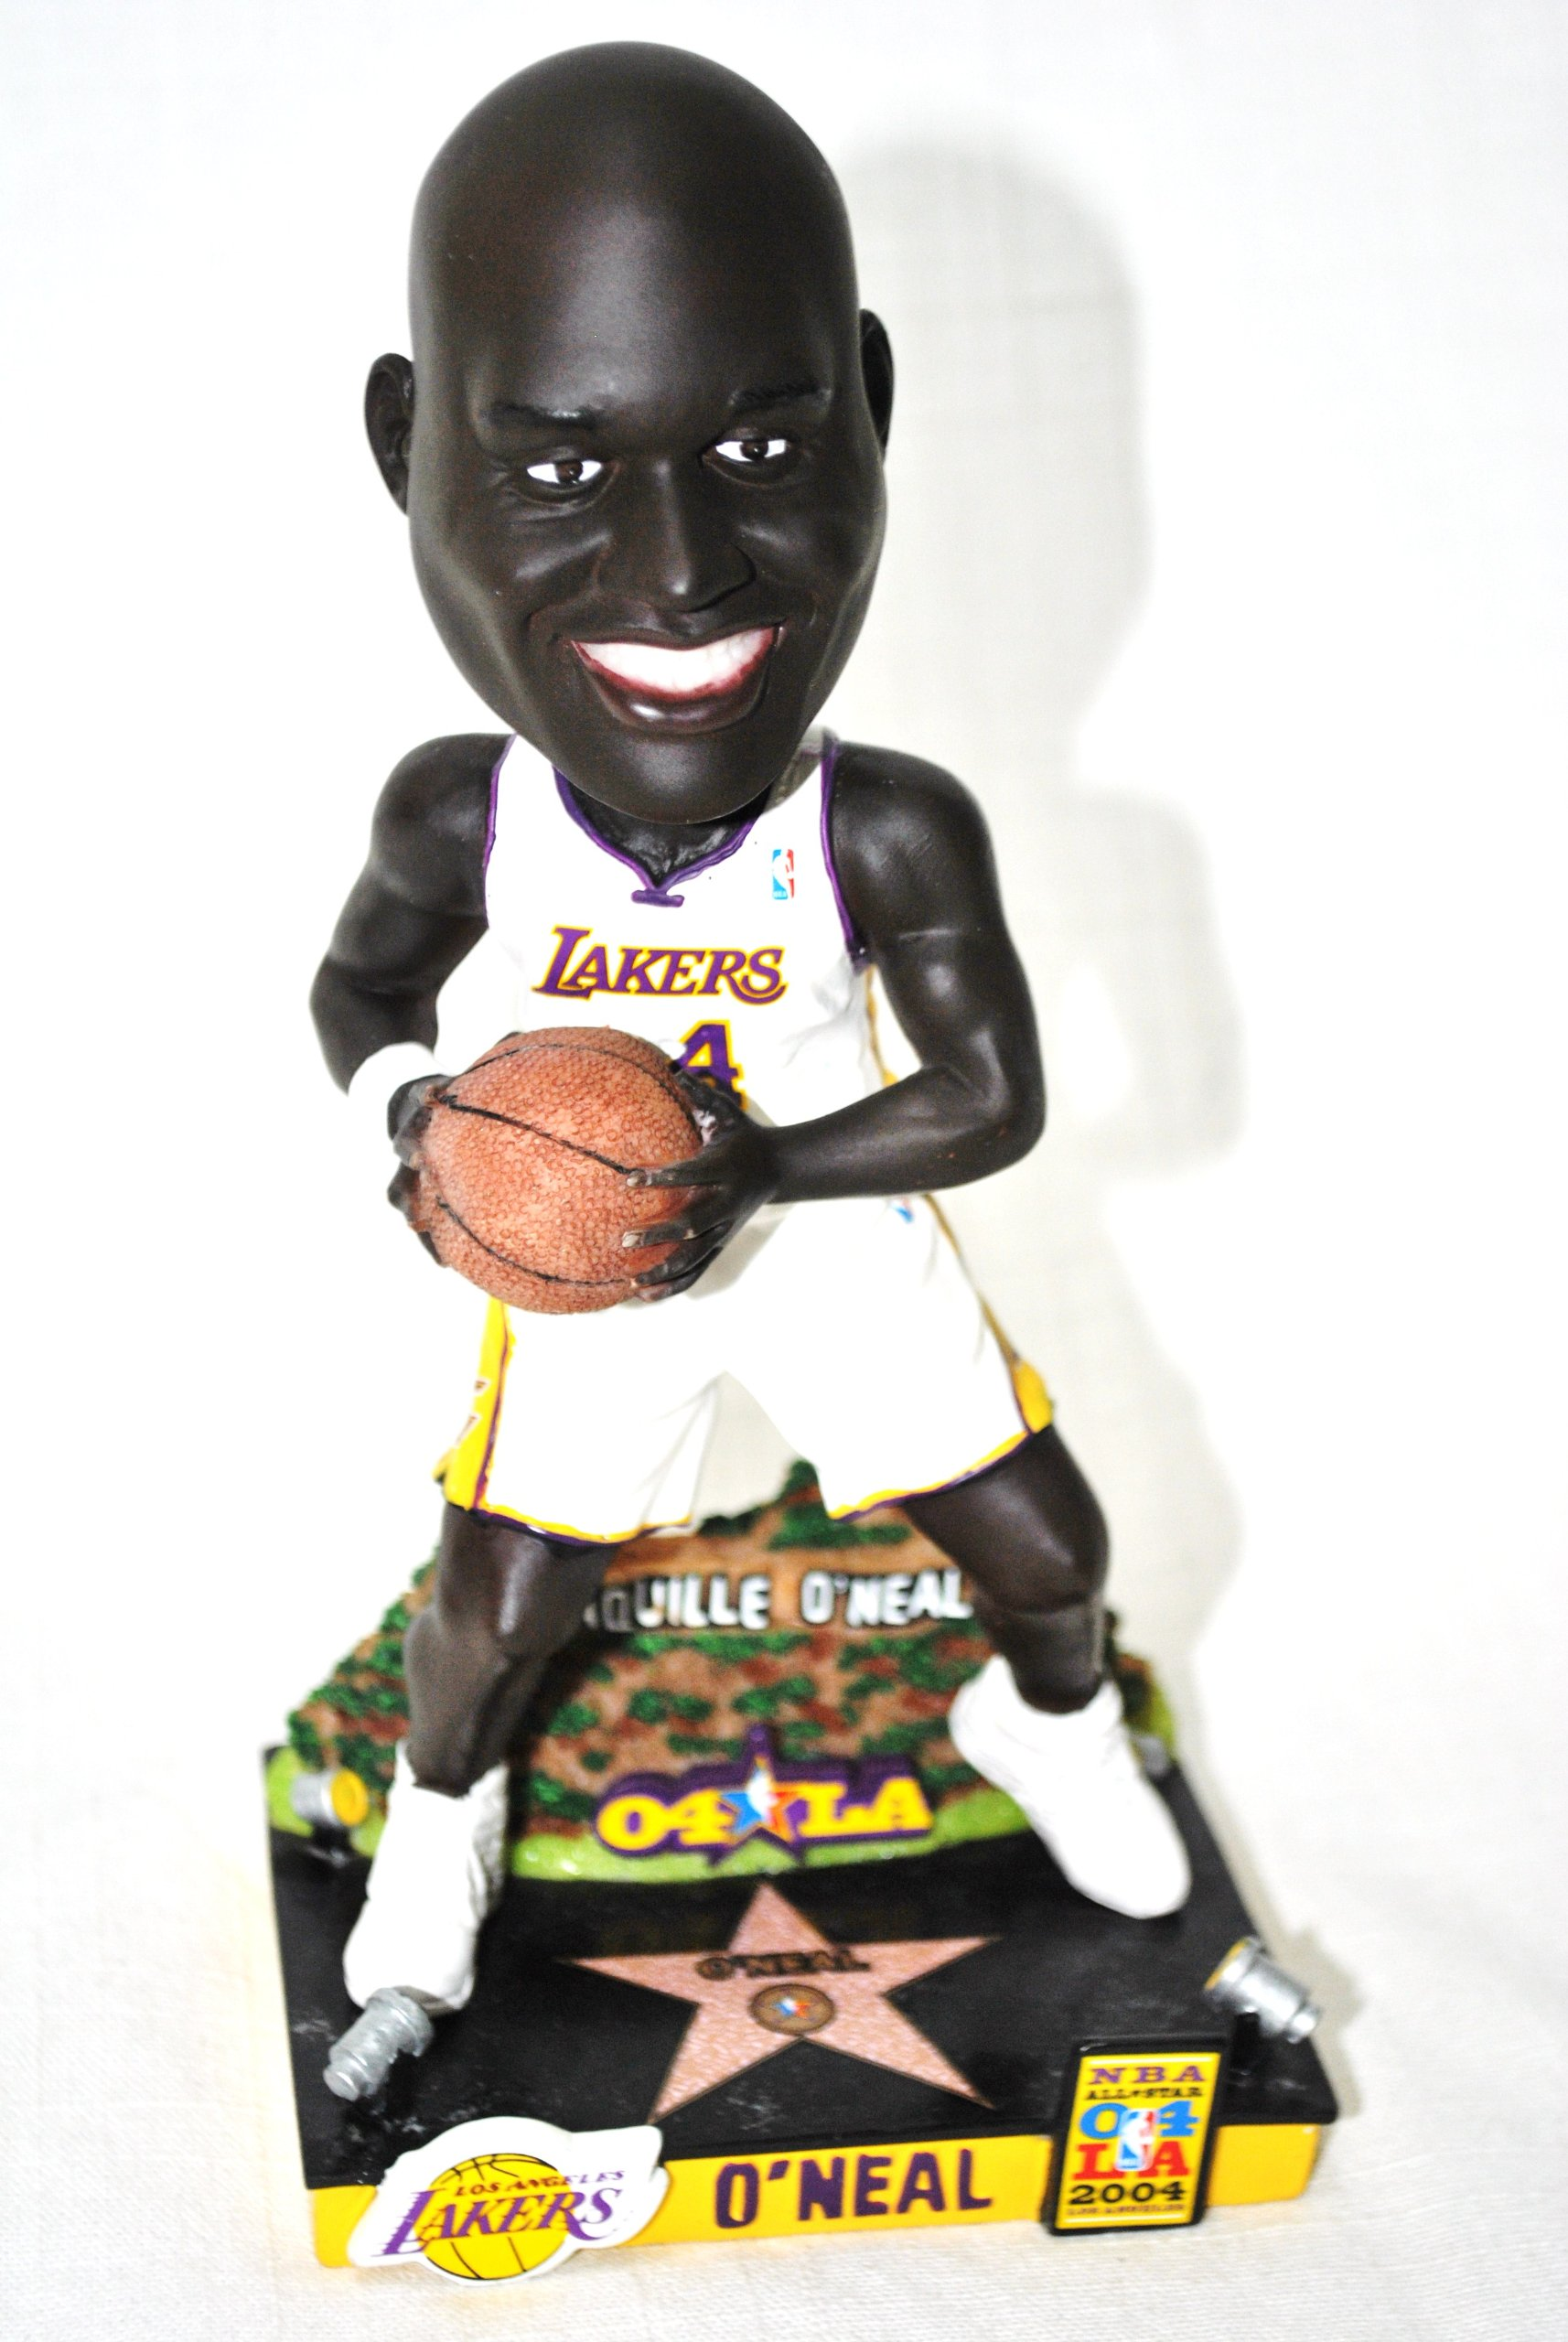 Limited Edition Shaq Oneal #34 LA LAKERS 03 all star game action Limited Edition Bobble head